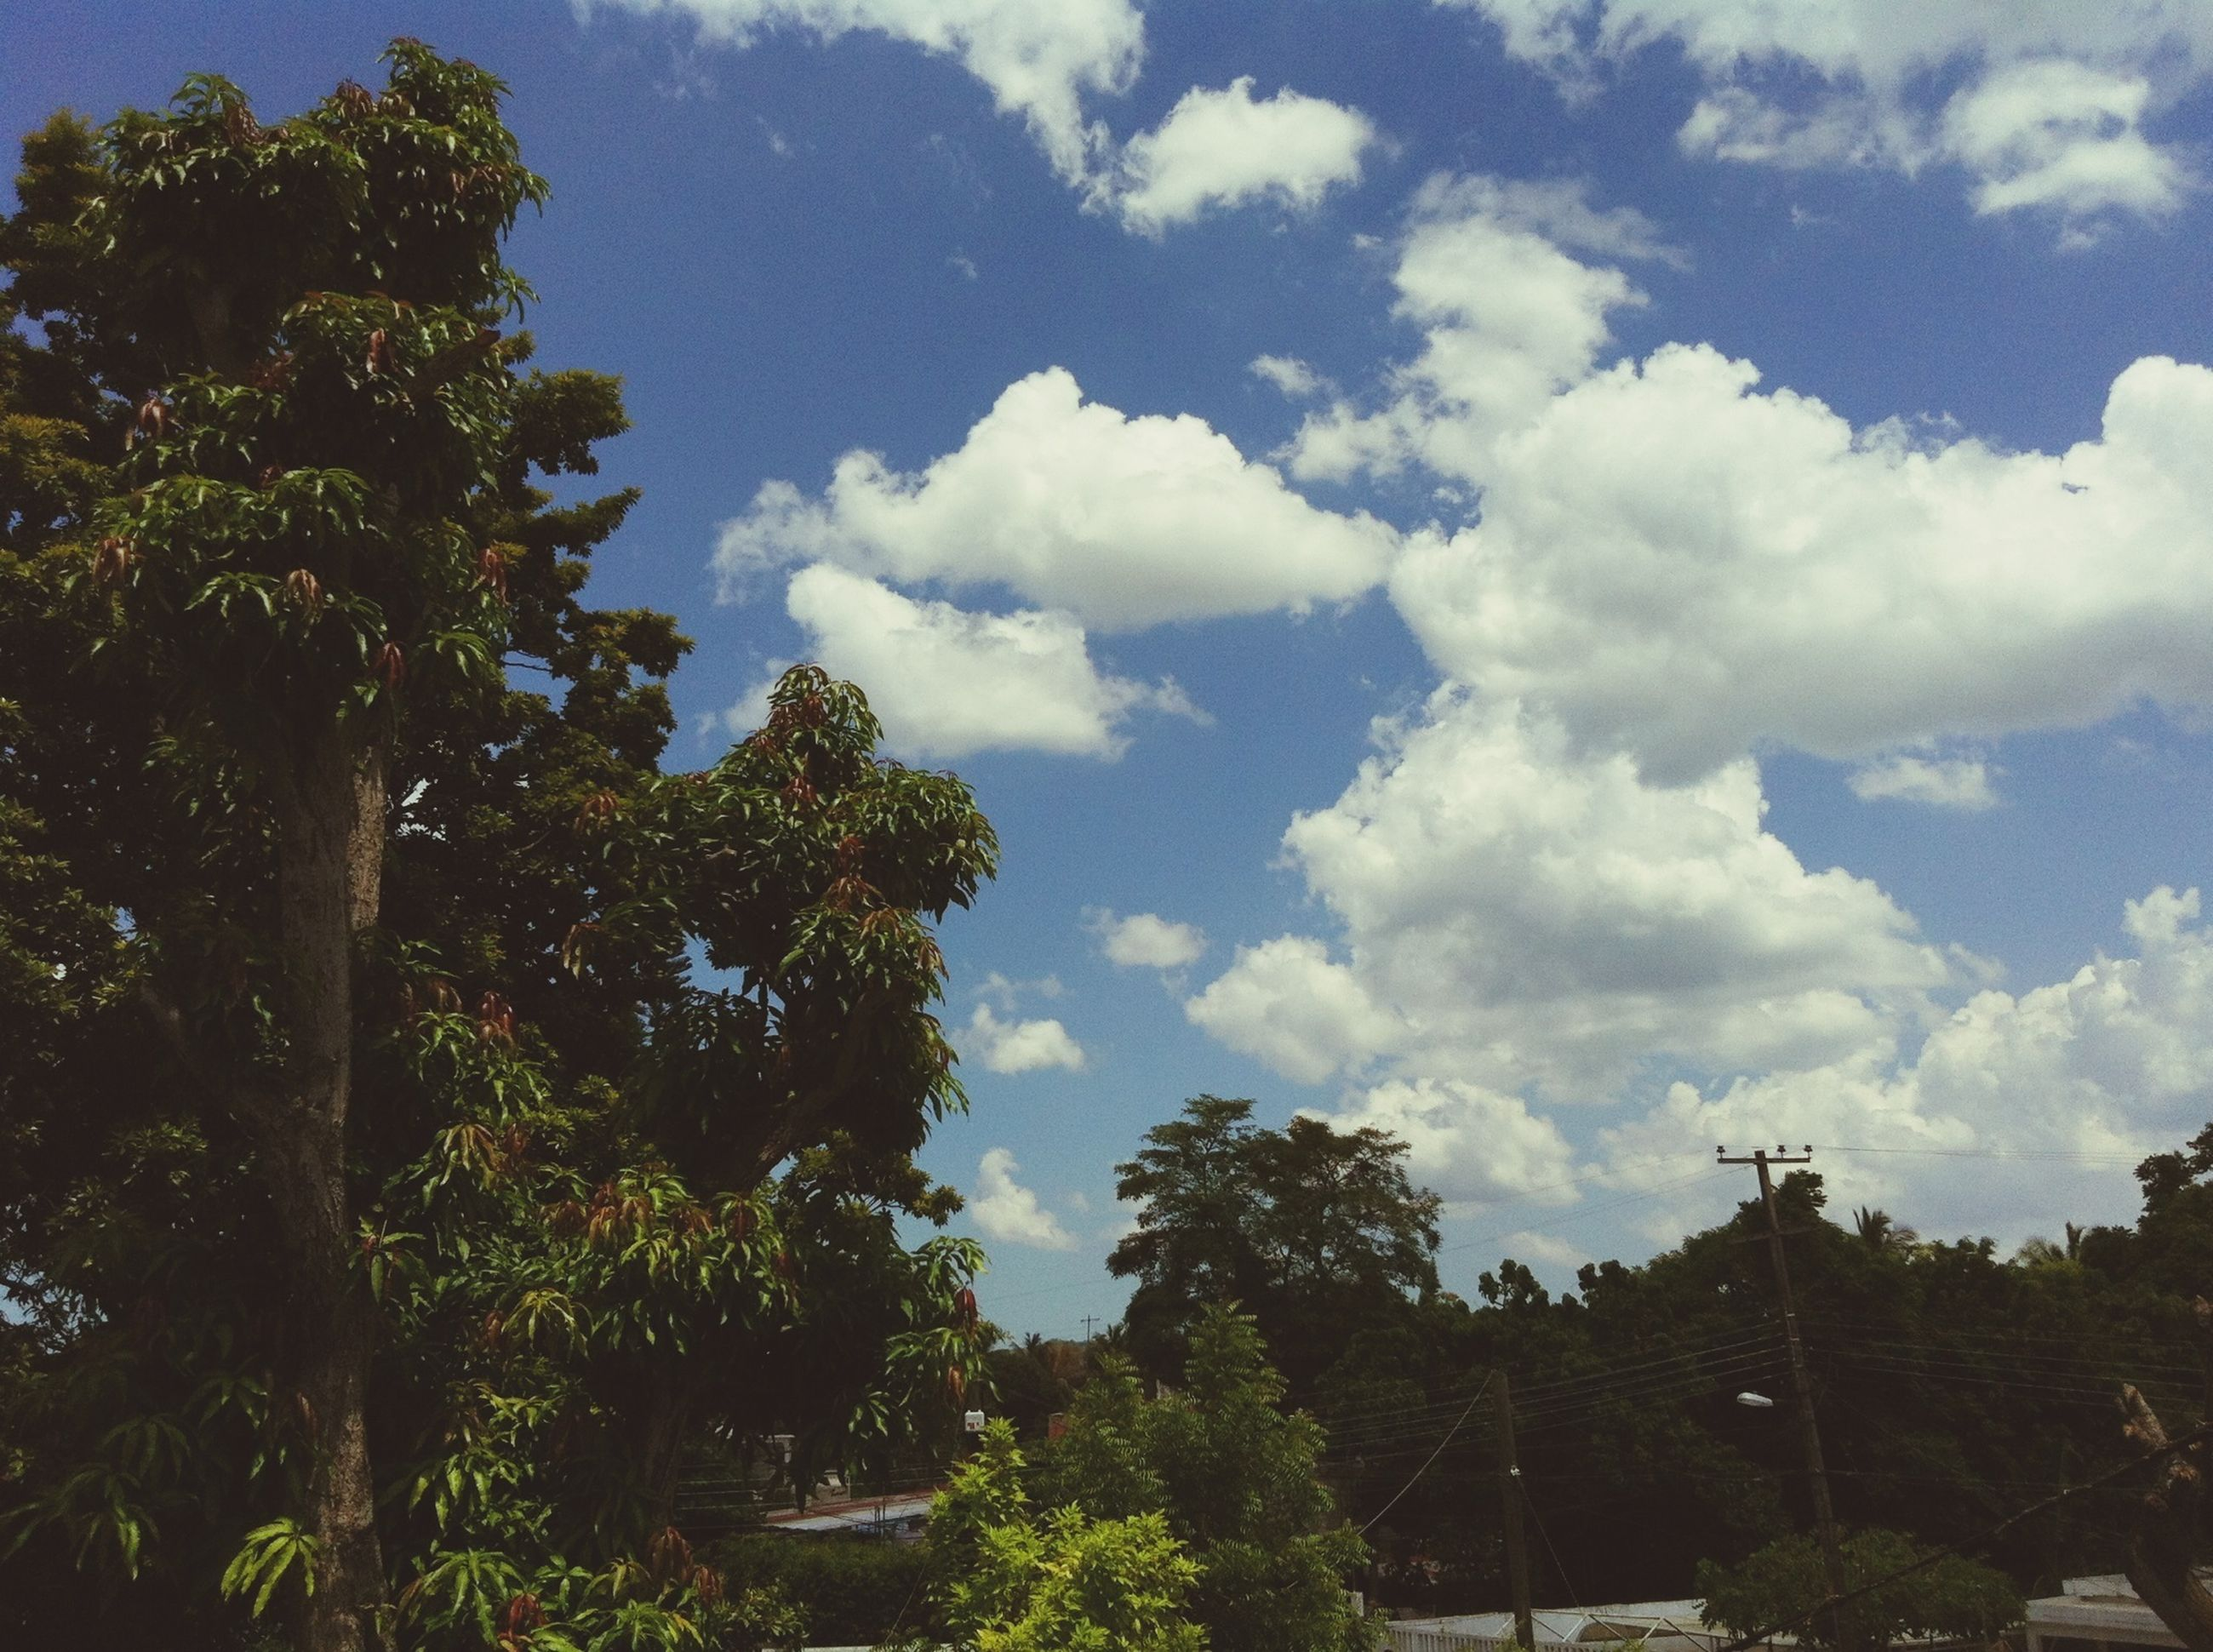 tree, sky, tranquility, cloud - sky, tranquil scene, growth, beauty in nature, scenics, nature, cloud, low angle view, cloudy, landscape, day, outdoors, non-urban scene, no people, blue, branch, idyllic